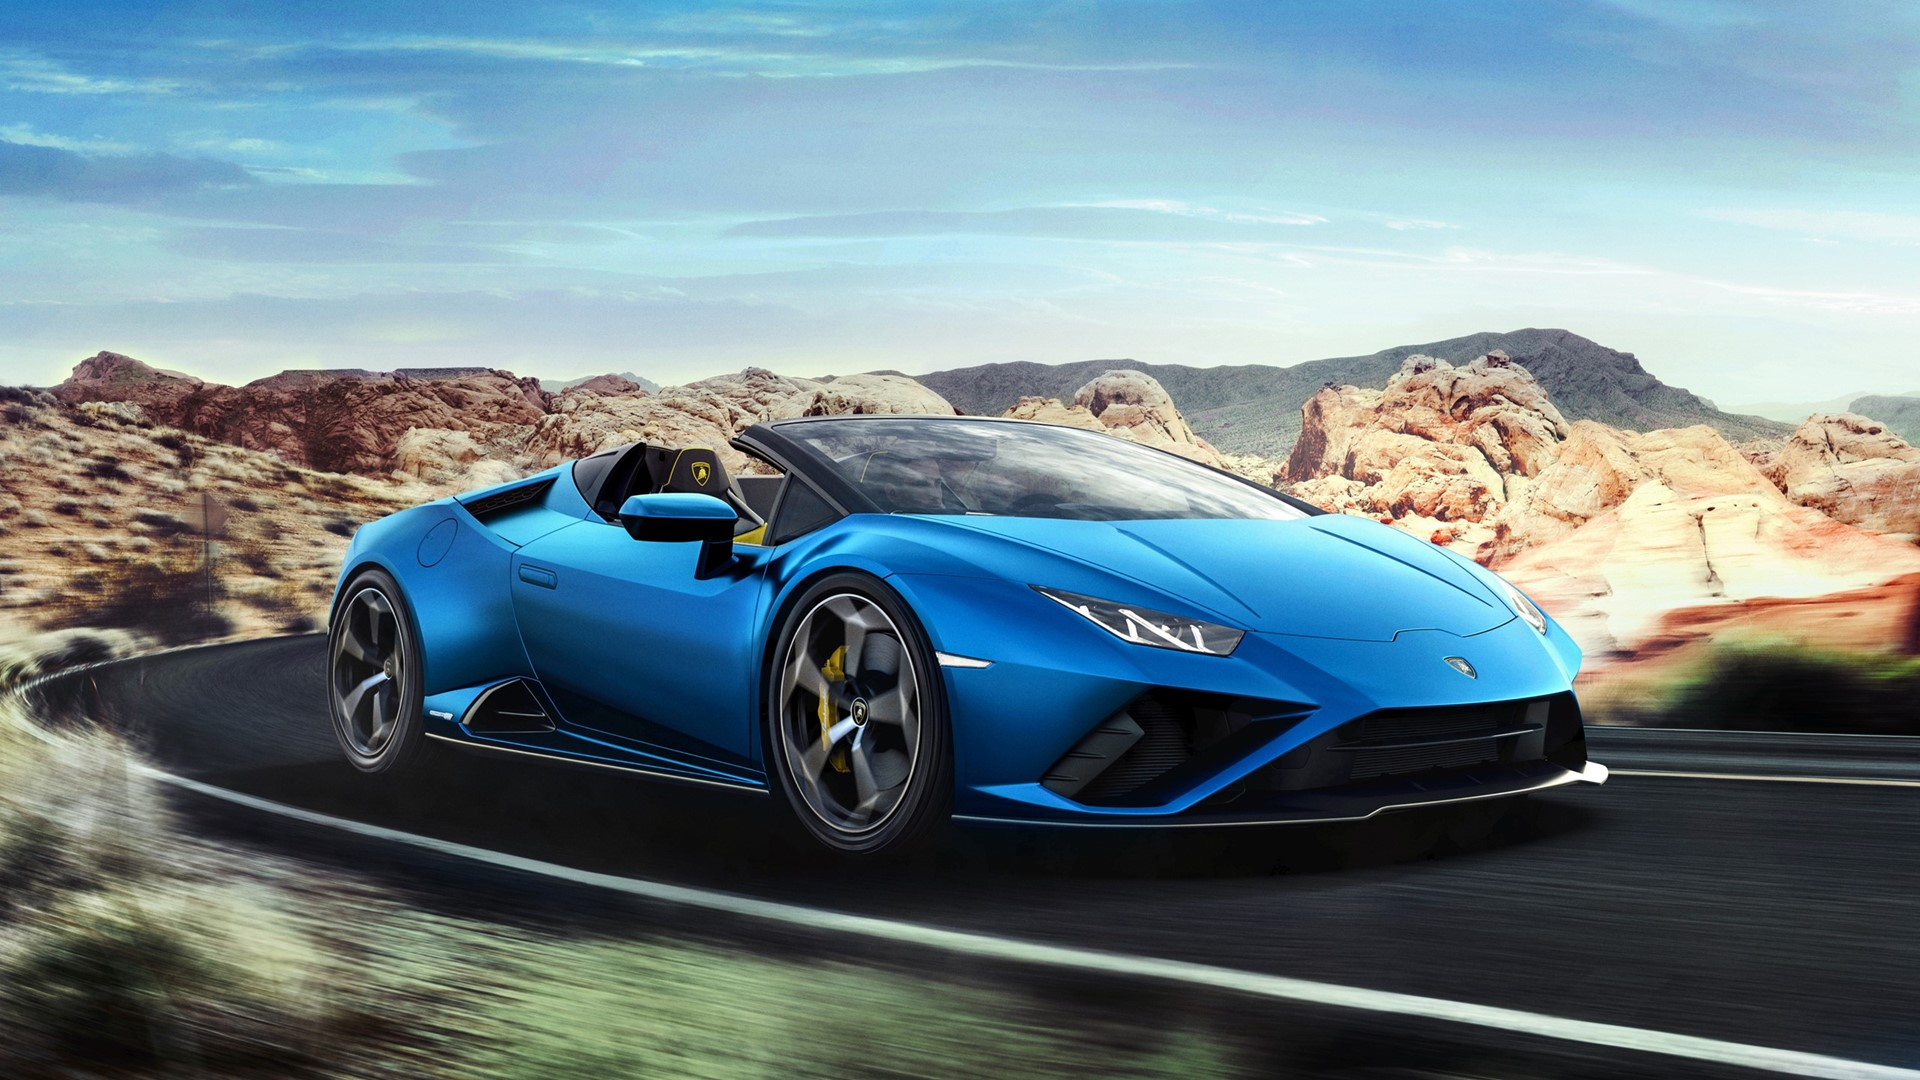 Automobili Lamborghini launches its first collector's digital stamp in collaboration with Bitstamps, dedicated to the Huracán EVO RWD Spyder - Image 3